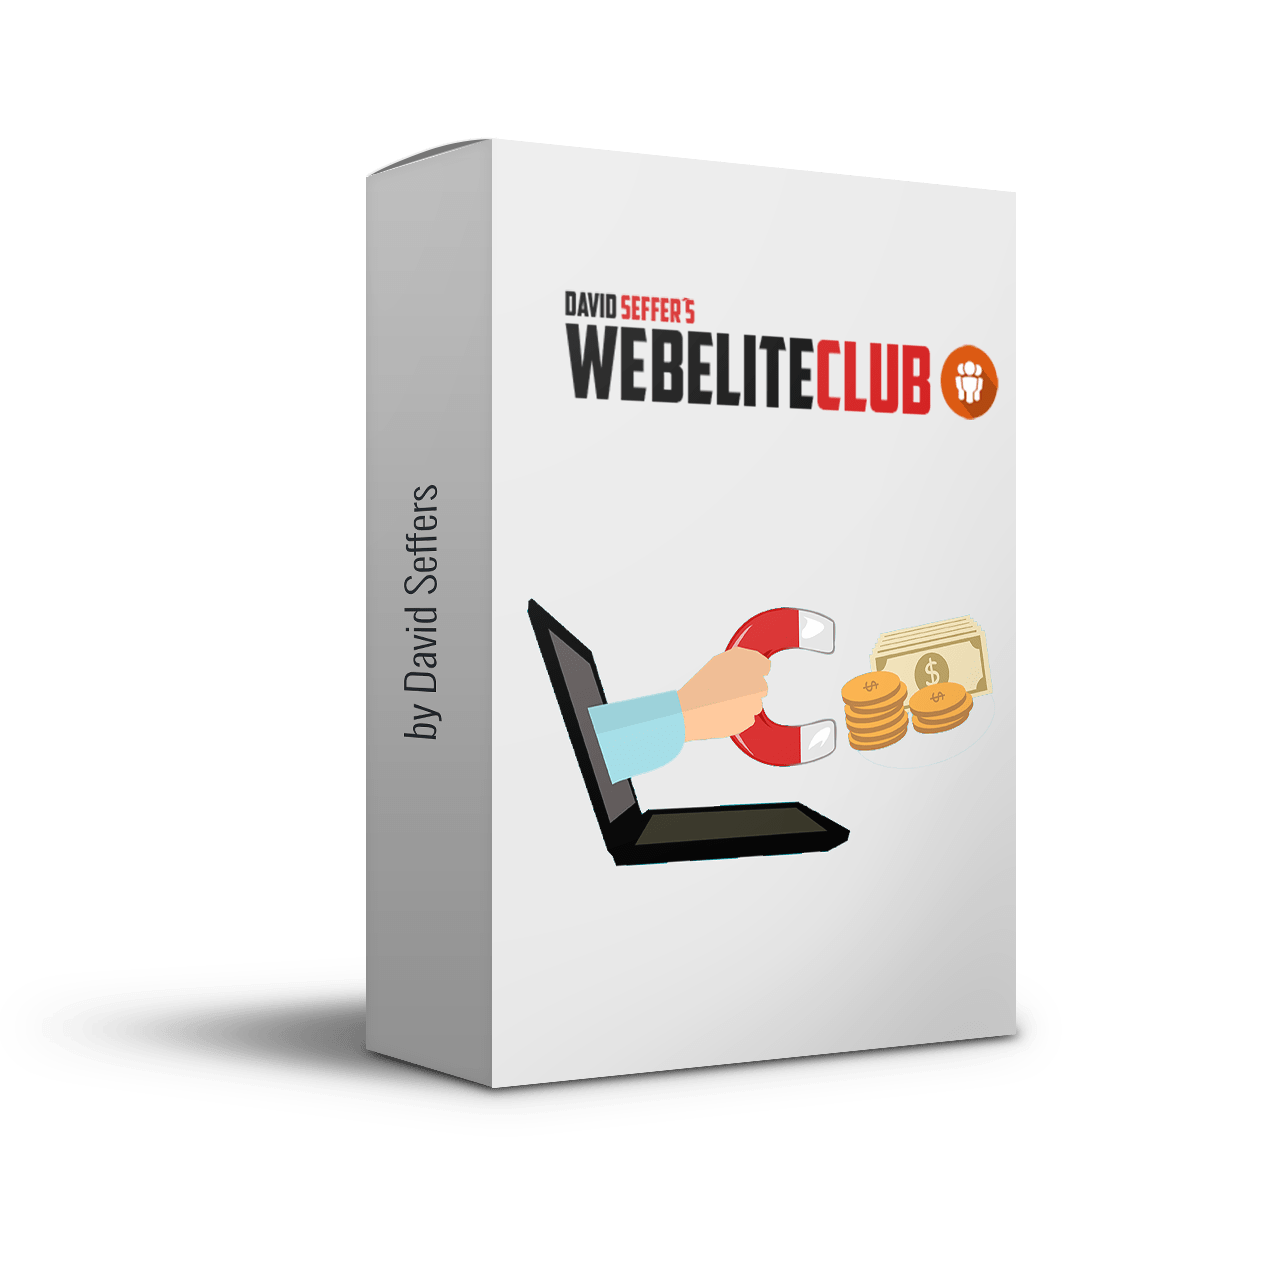 WEBELITECLUB vom Internet Marketing Coach David Seffer